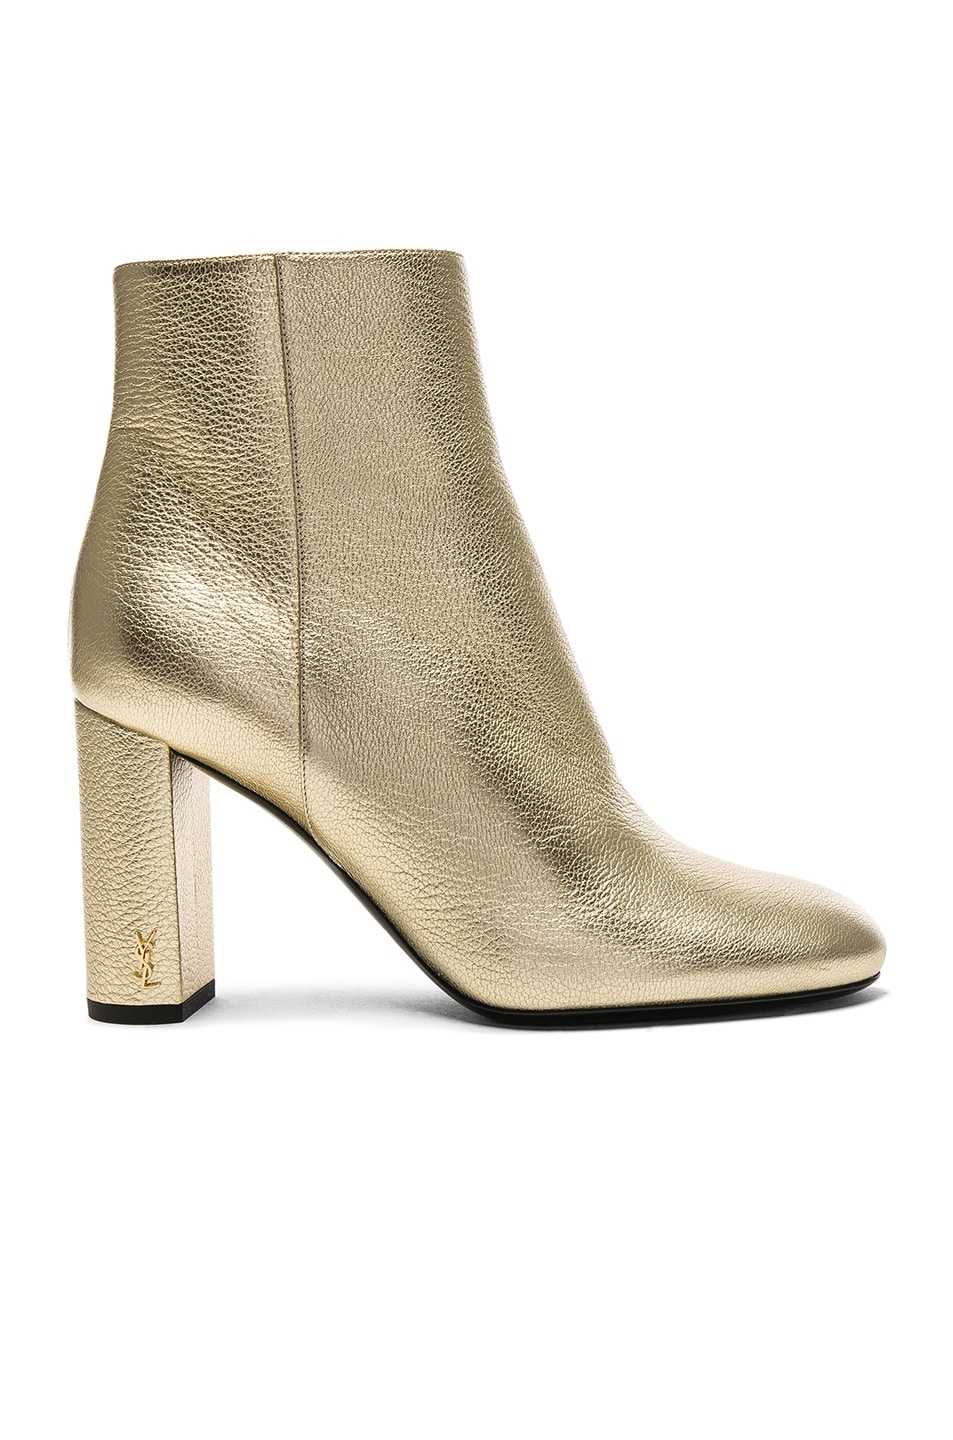 Image 1 of Saint Laurent Leather Loulou Boots in Pale Gold